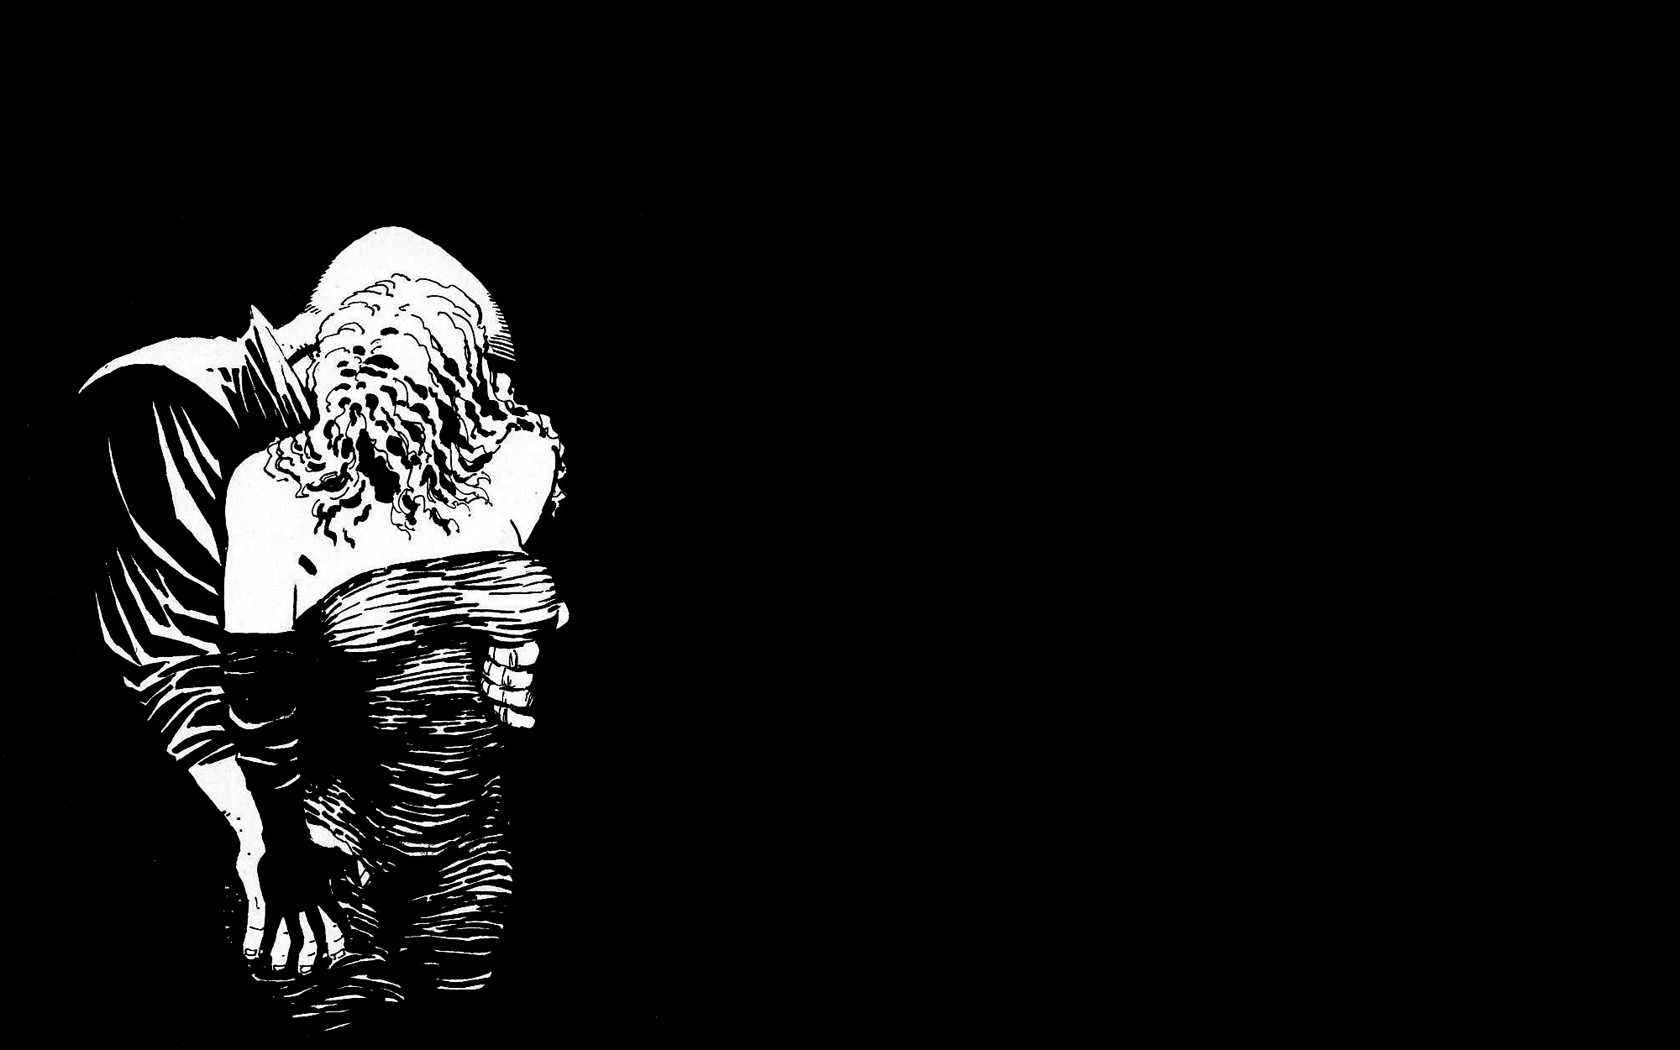 Sin City Wallpaper and Background | 1680x1050 | ID:403484